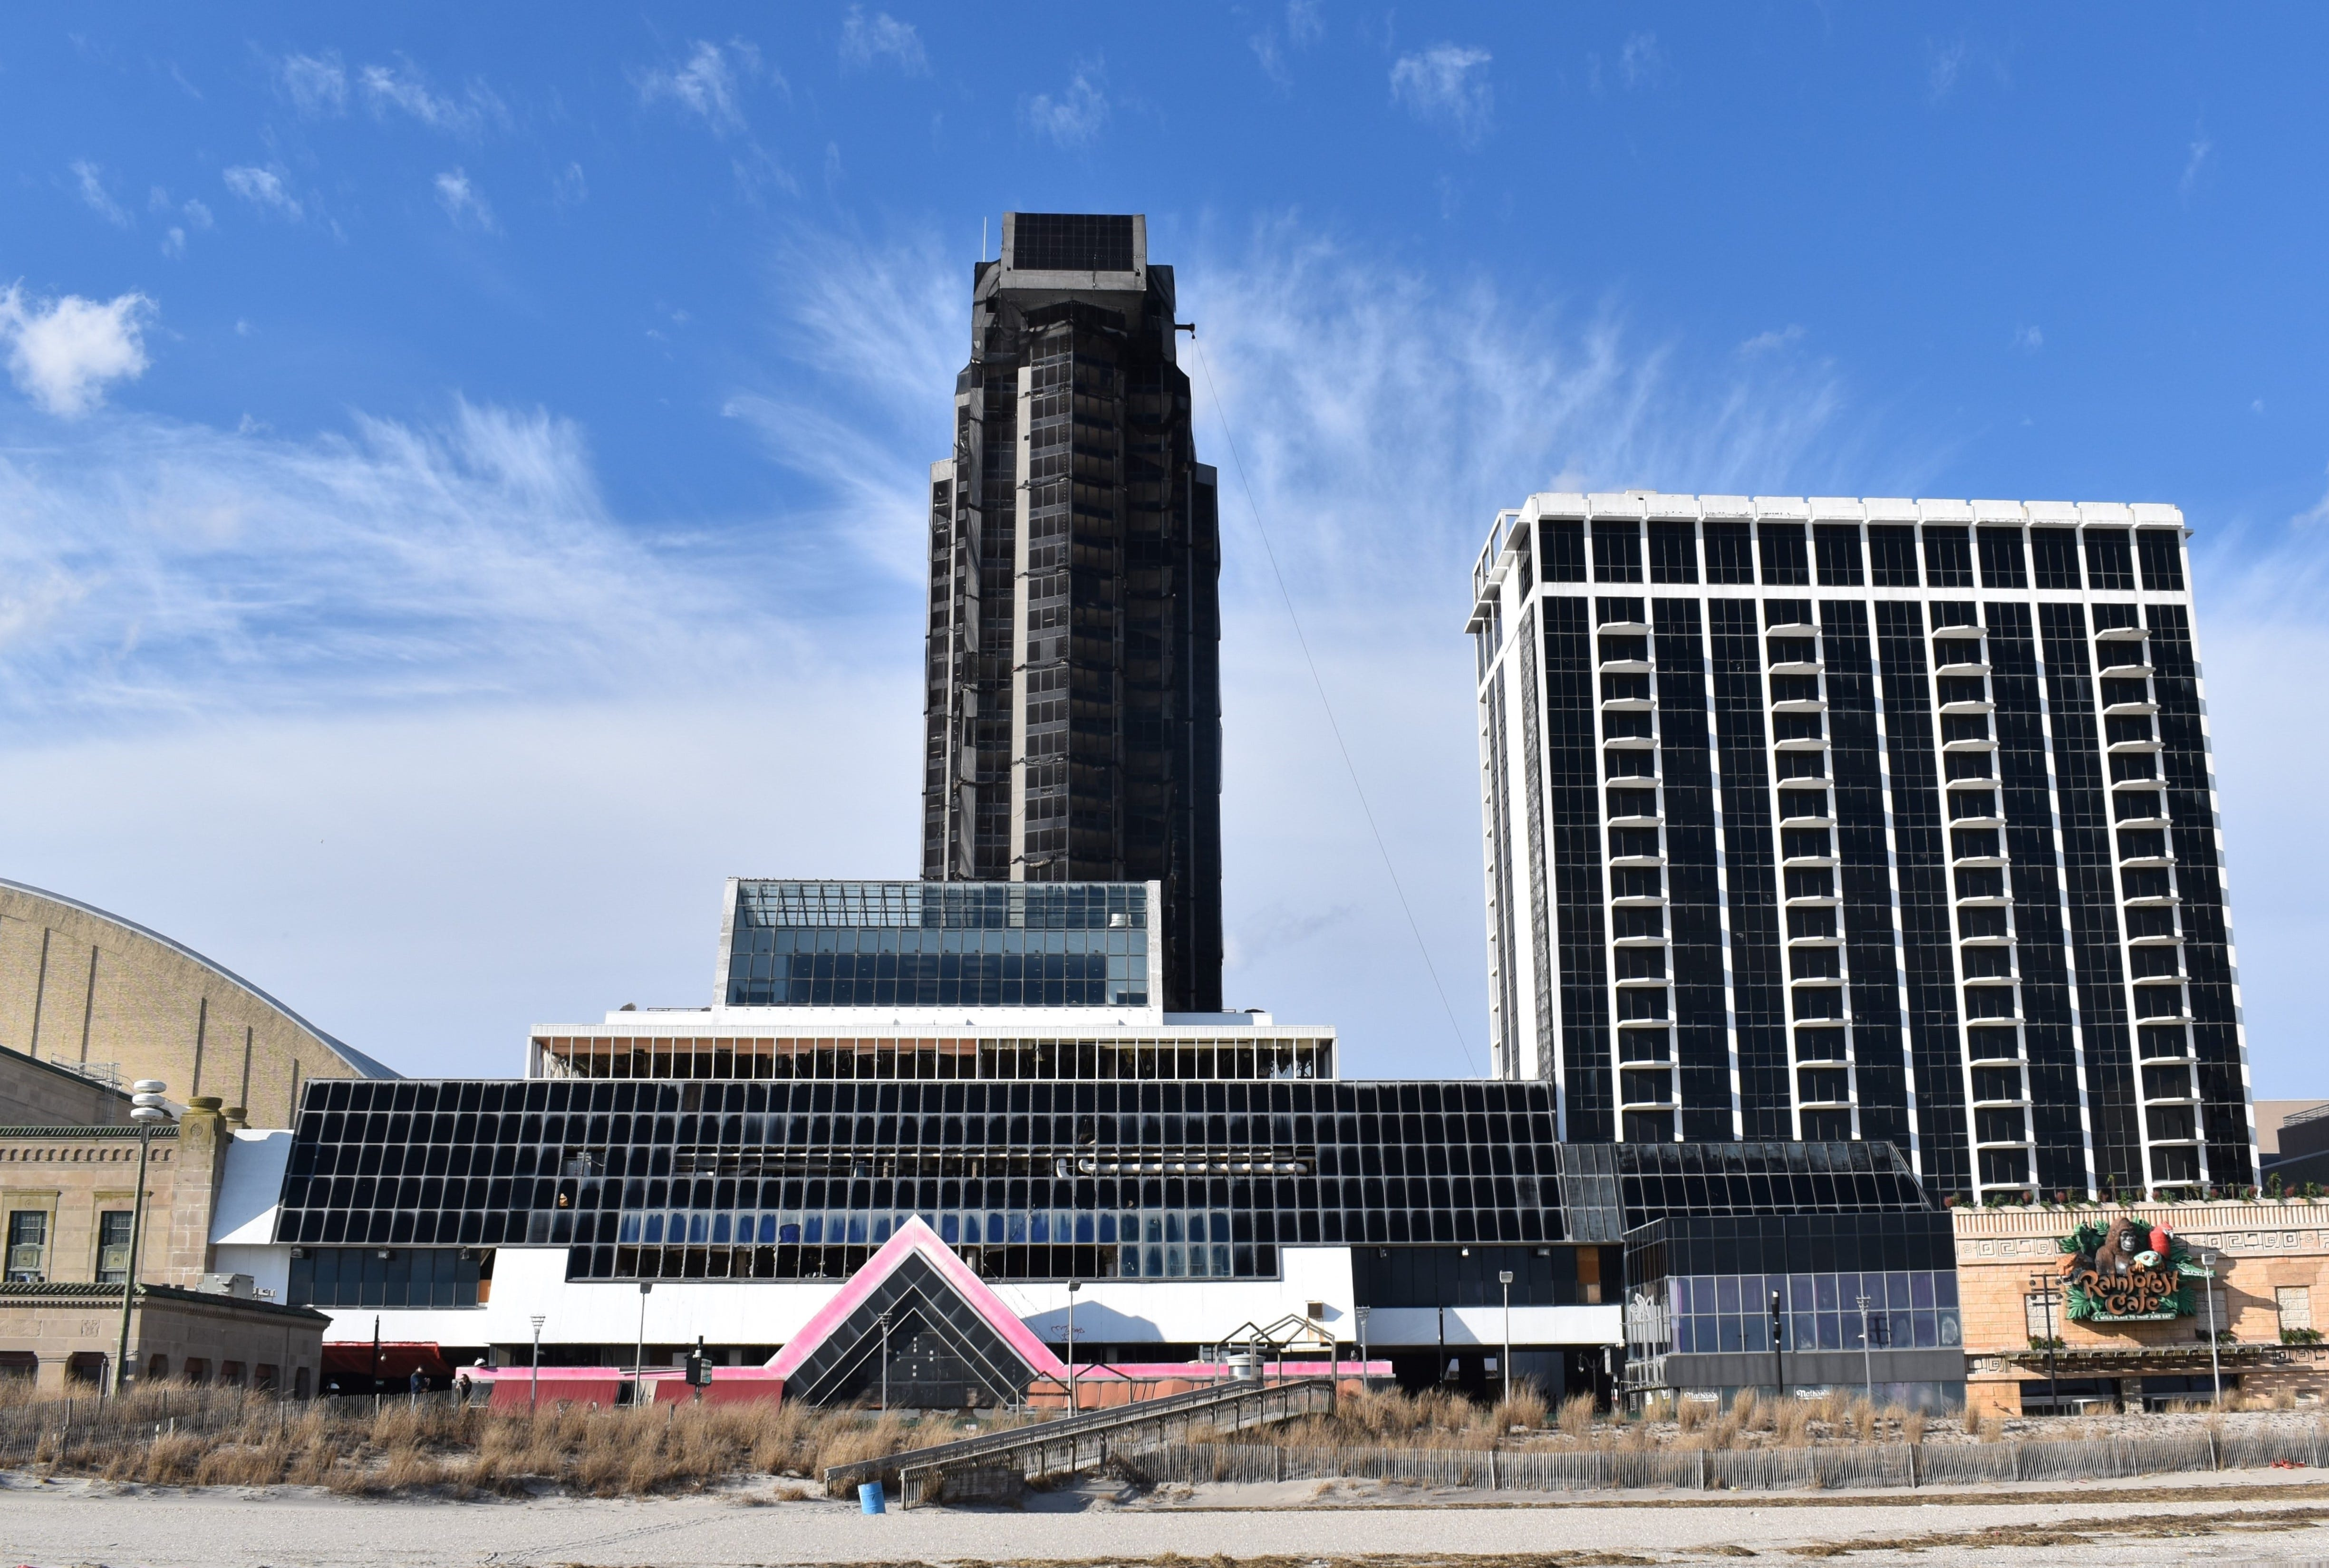 Watch: Trump Plaza implosion signals end of an era in Atlantic City